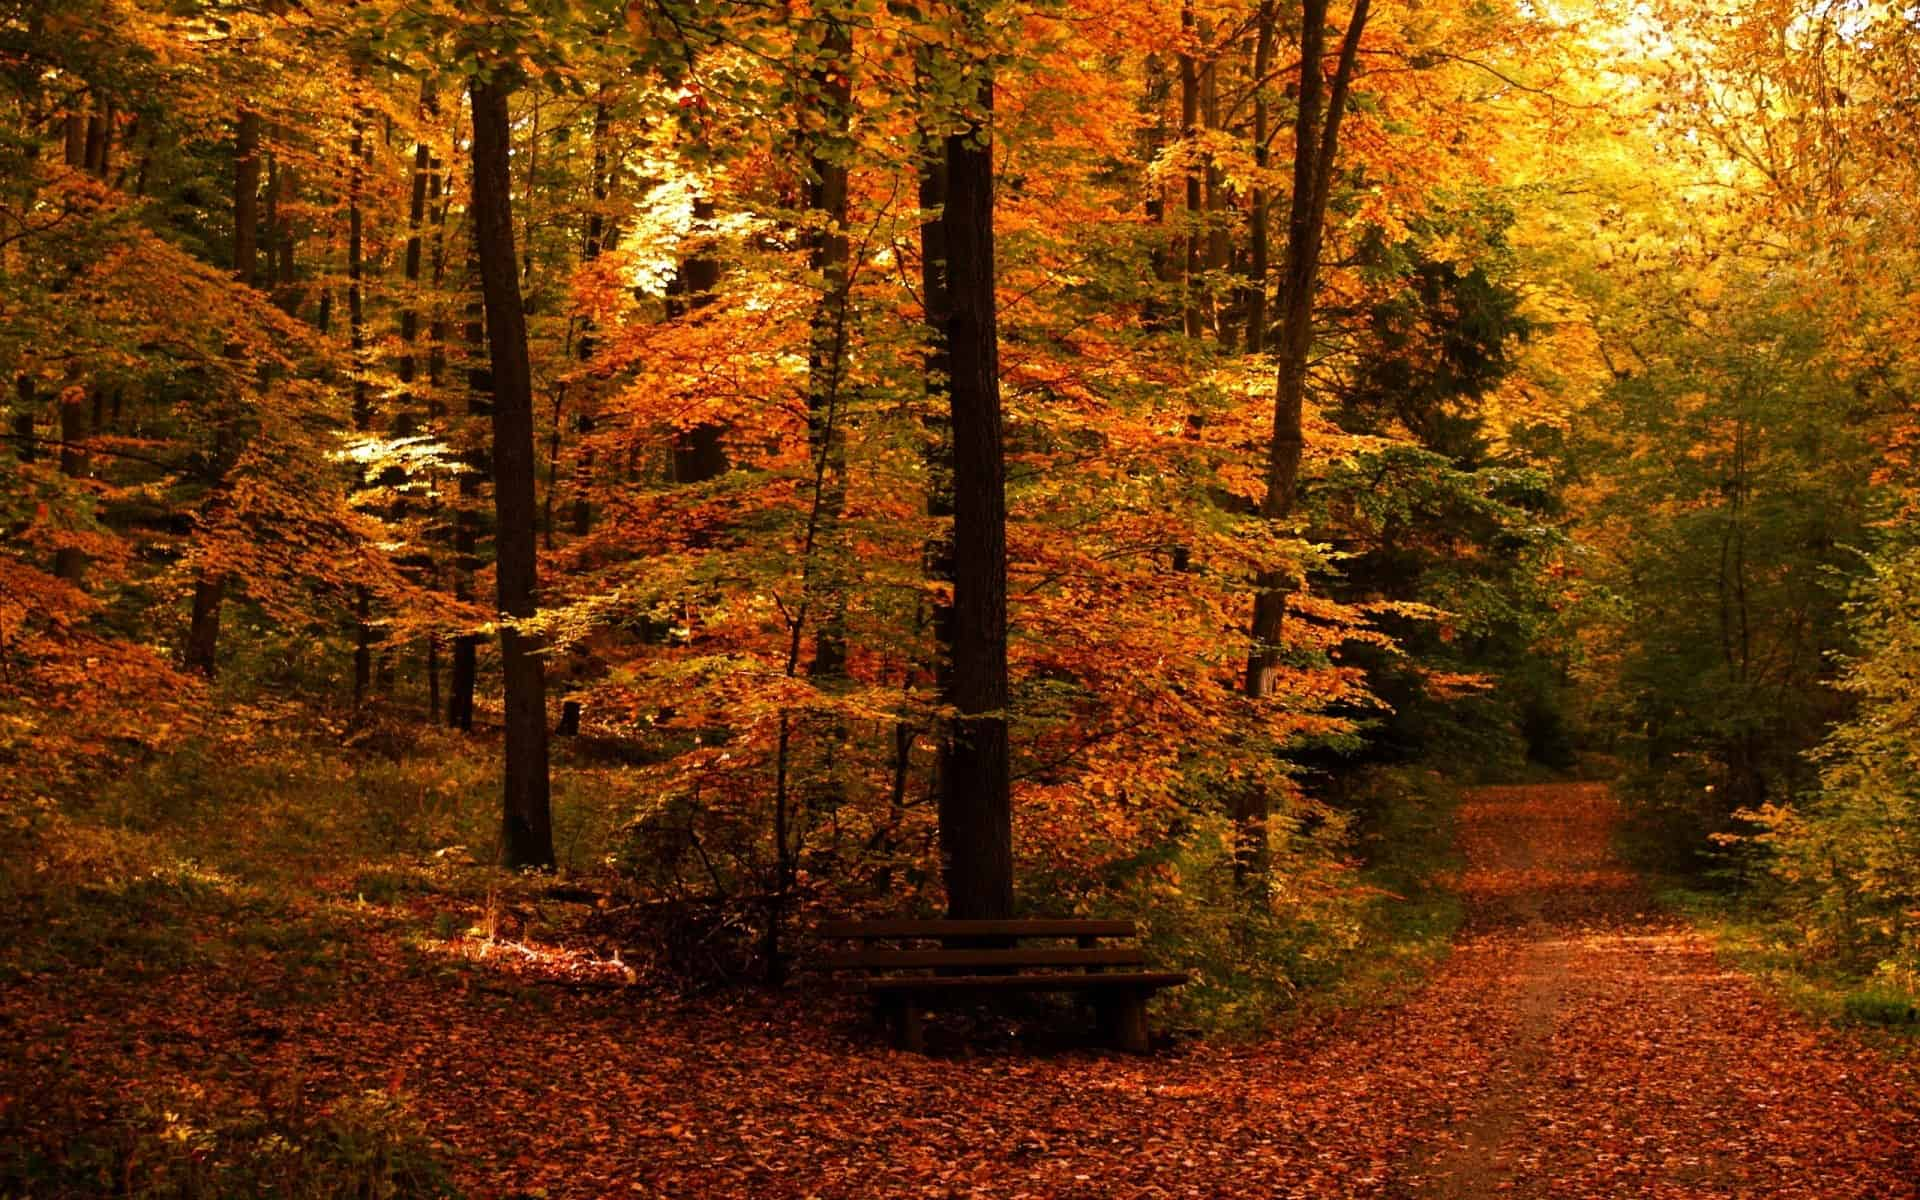 Autumn Wallpaper 037